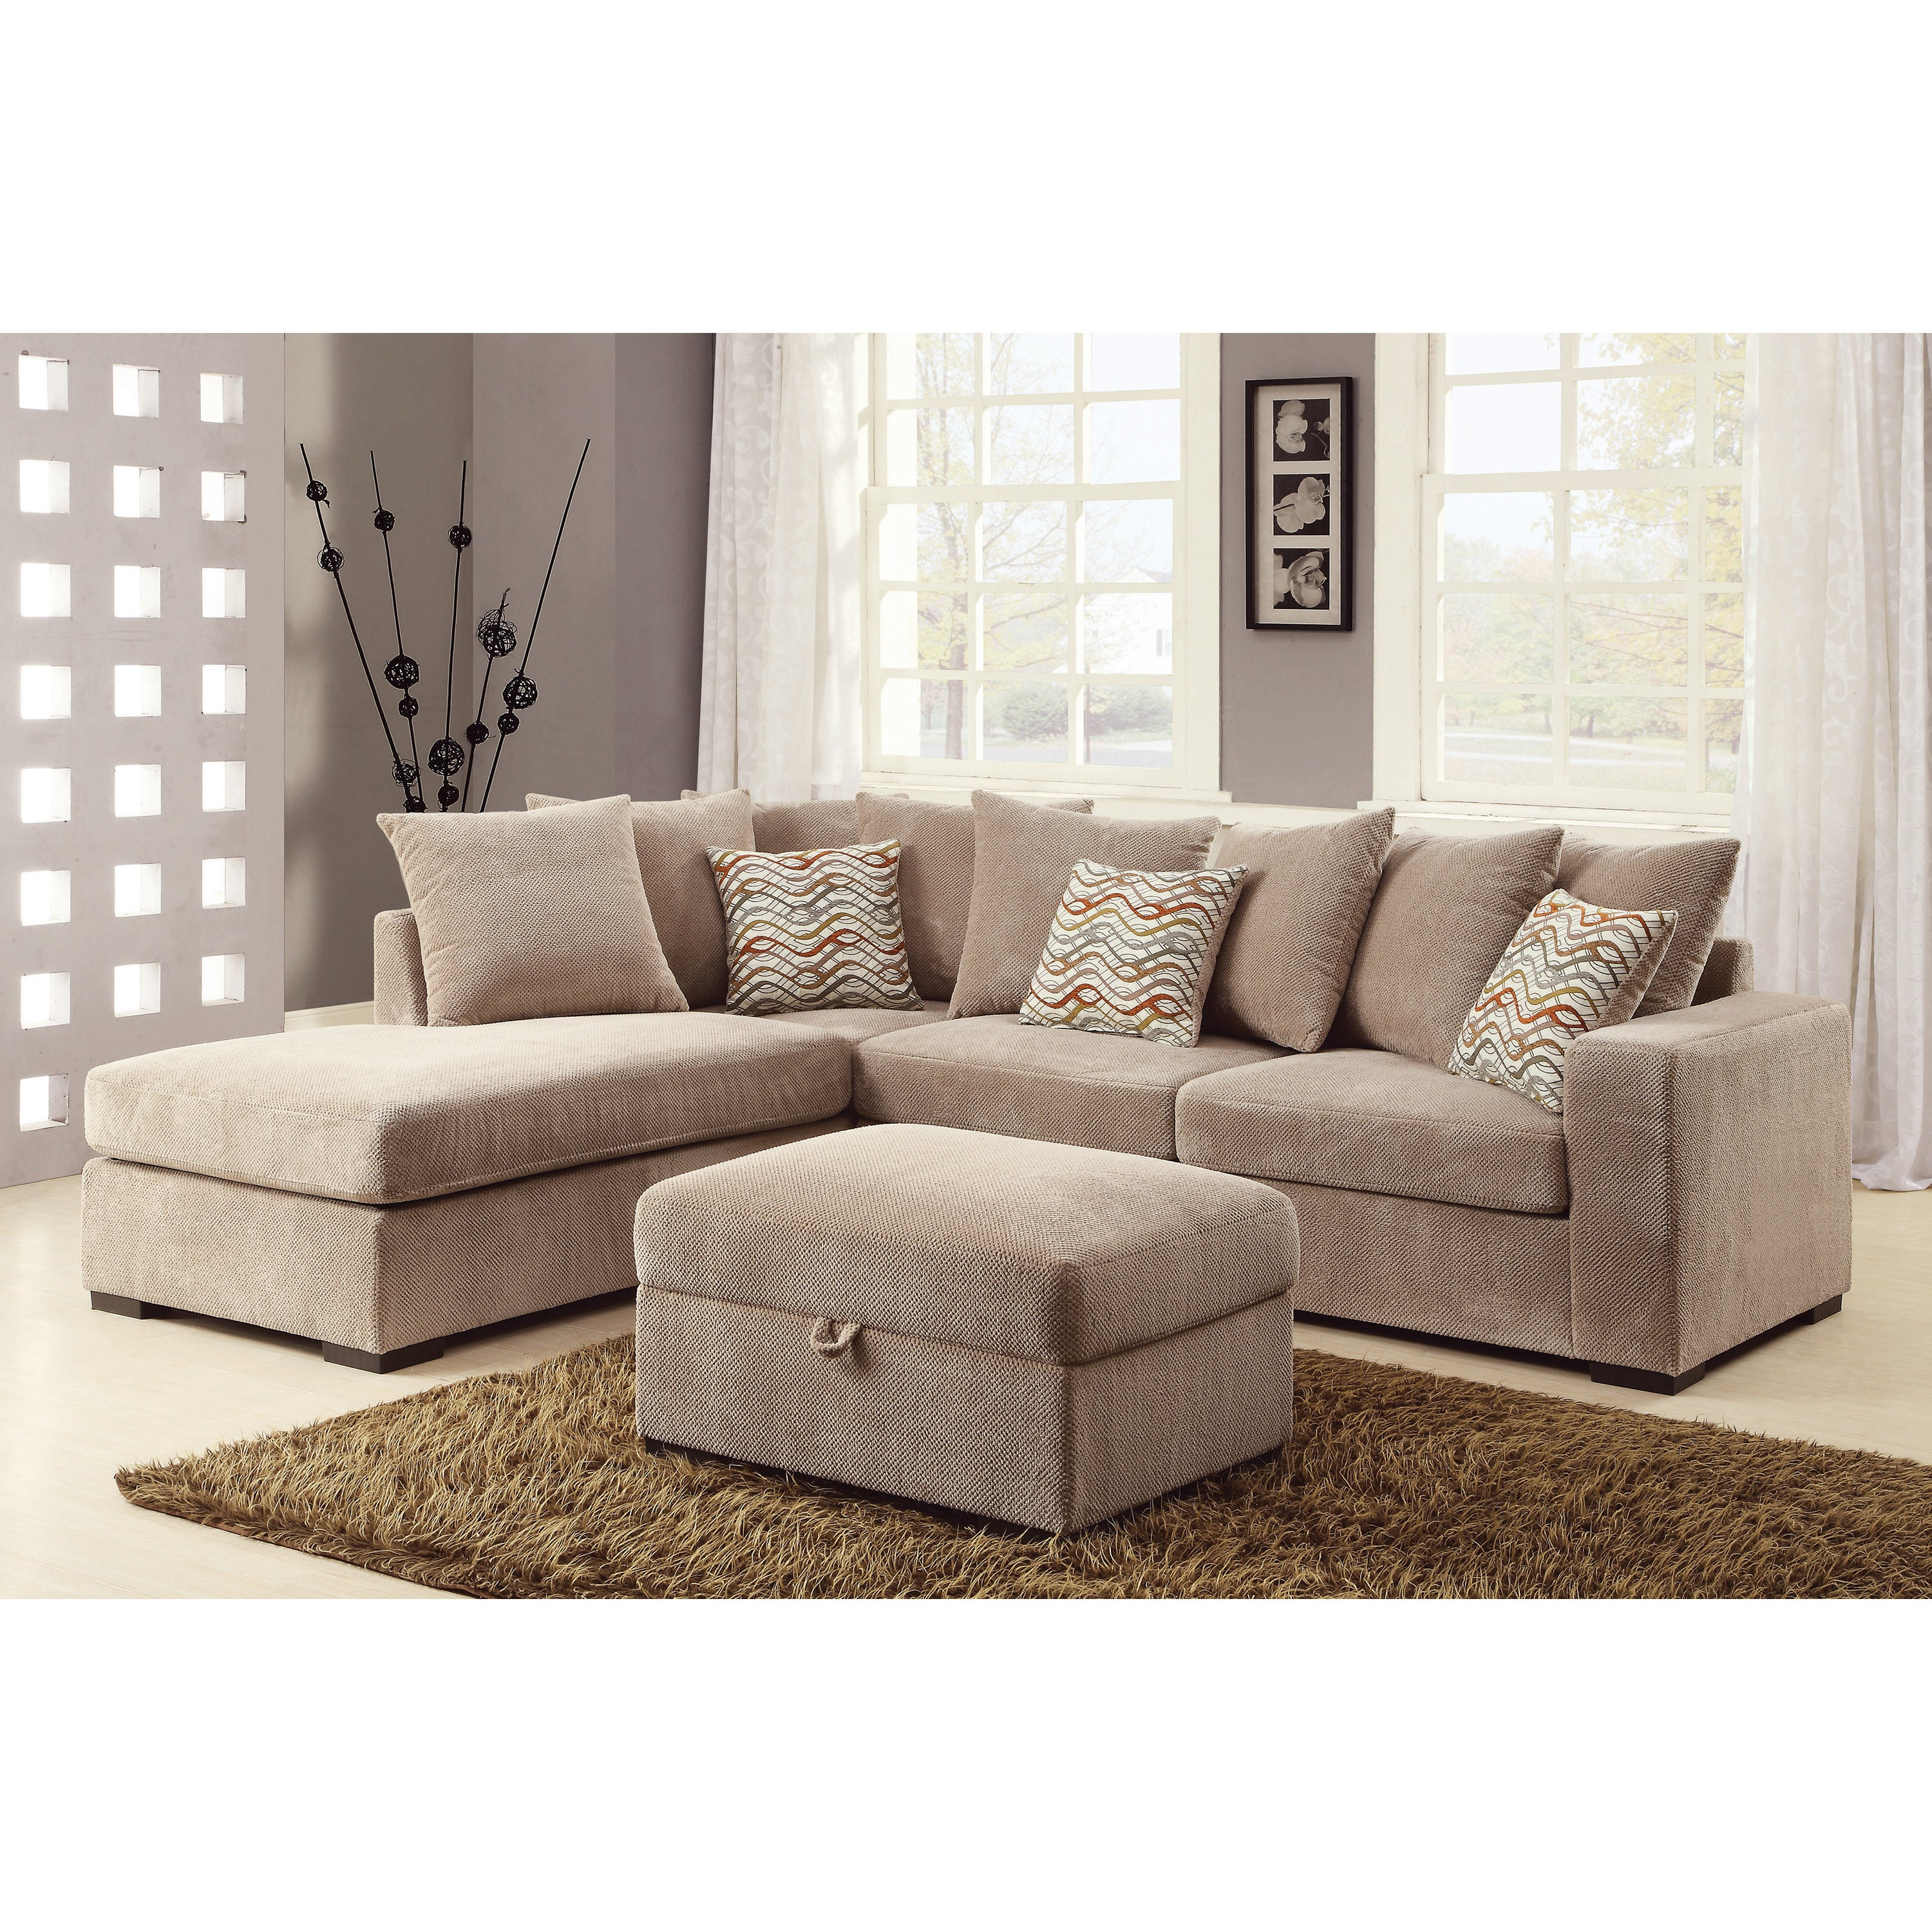 Outstanding Copper Grove Claiborne Taupe Chenille Cushioned Sectional 102 X 82 X 35 50 Pdpeps Interior Chair Design Pdpepsorg